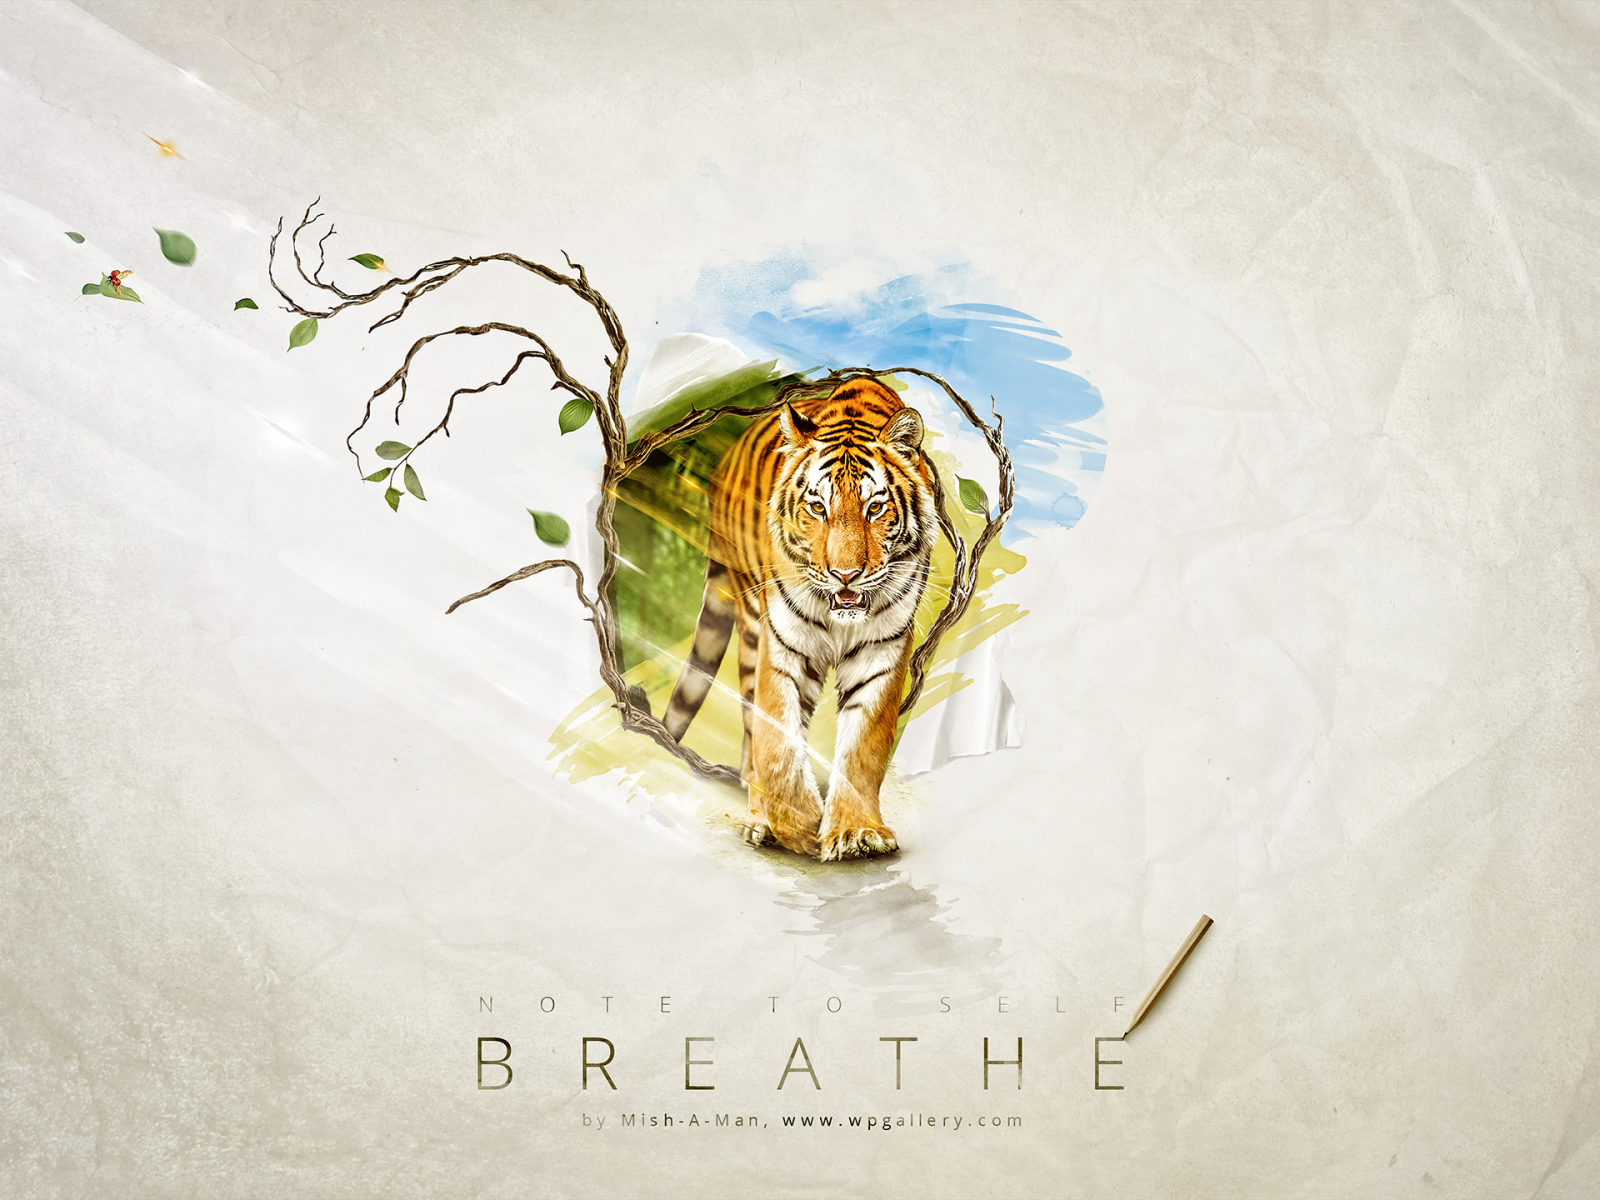 Breathe for 1600 x 1200 resolution